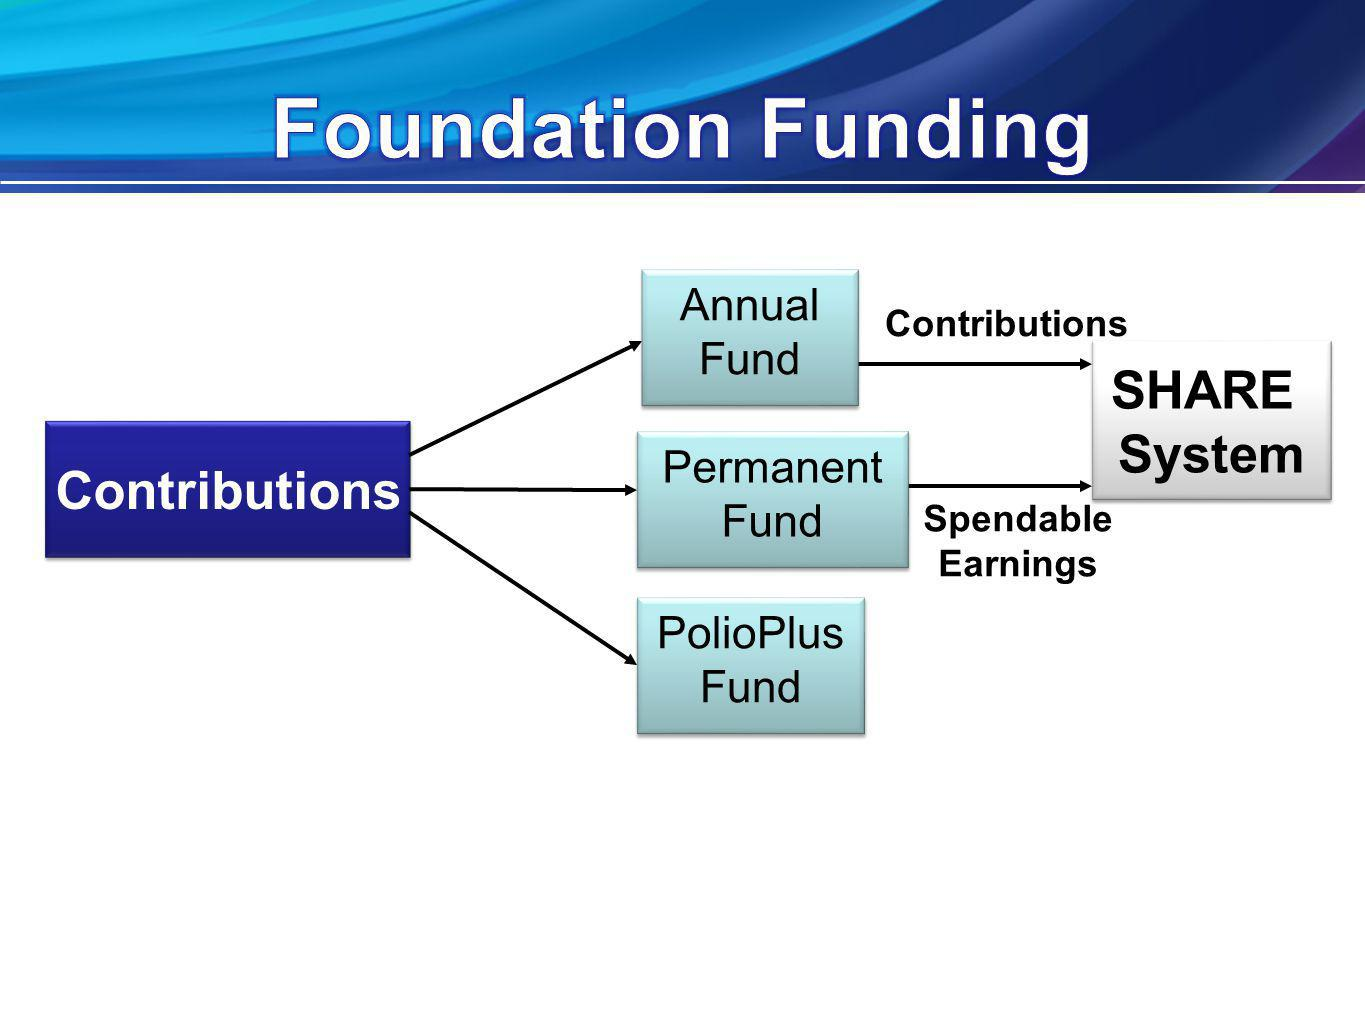 Contributions SHARE System SHARE System Contributions Spendable Earnings Annual Fund Annual Fund Permanent Fund Permanent Fund PolioPlus Fund